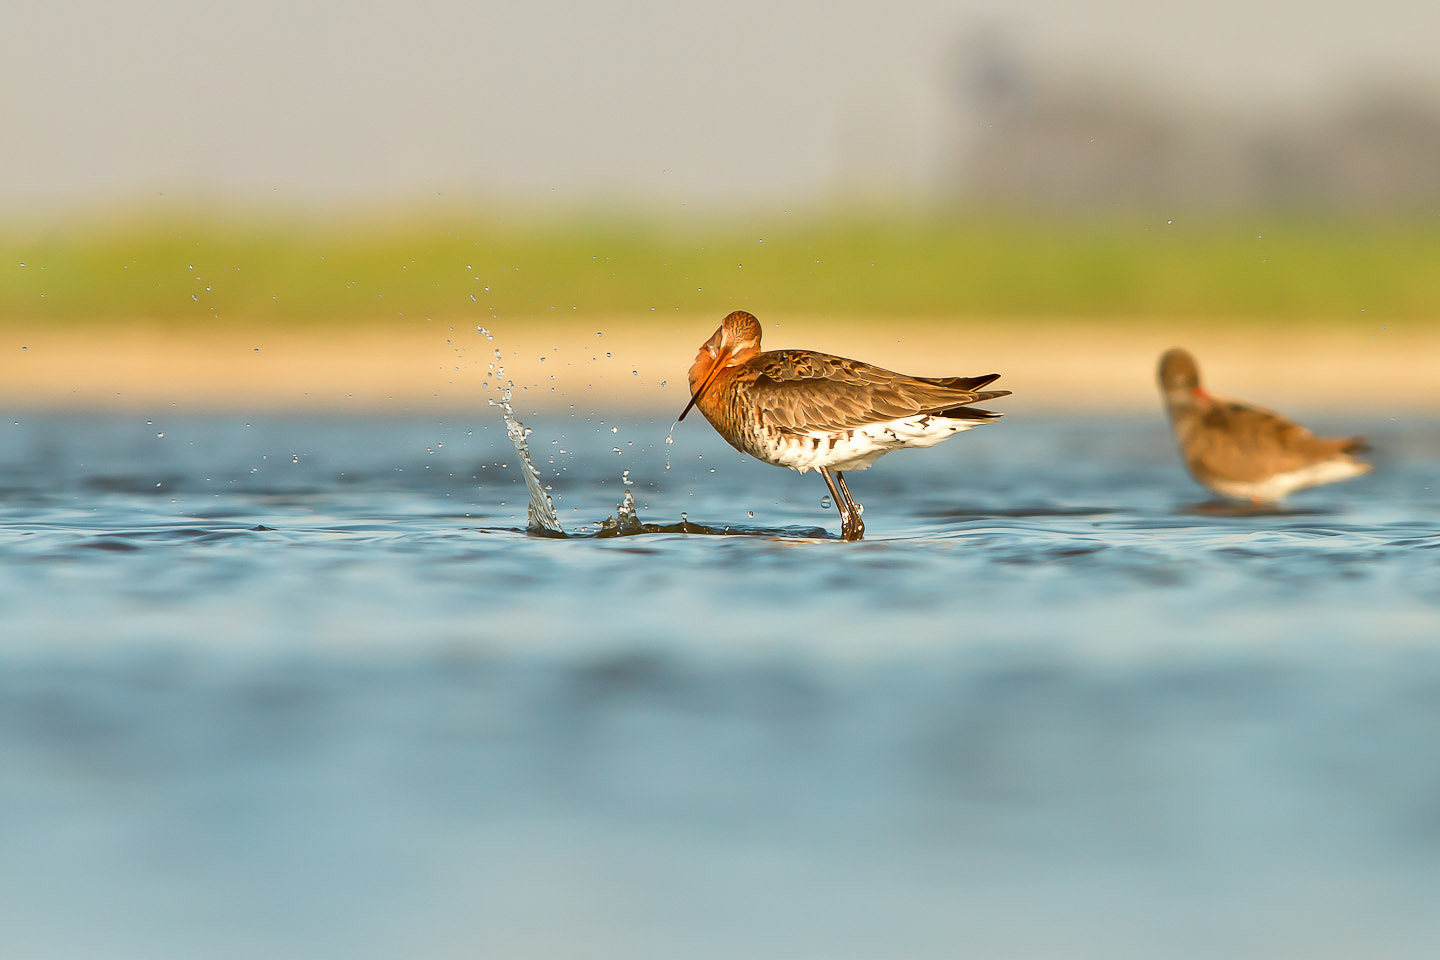 Photograph Limosa Limosa by Alcide Pece on 500px